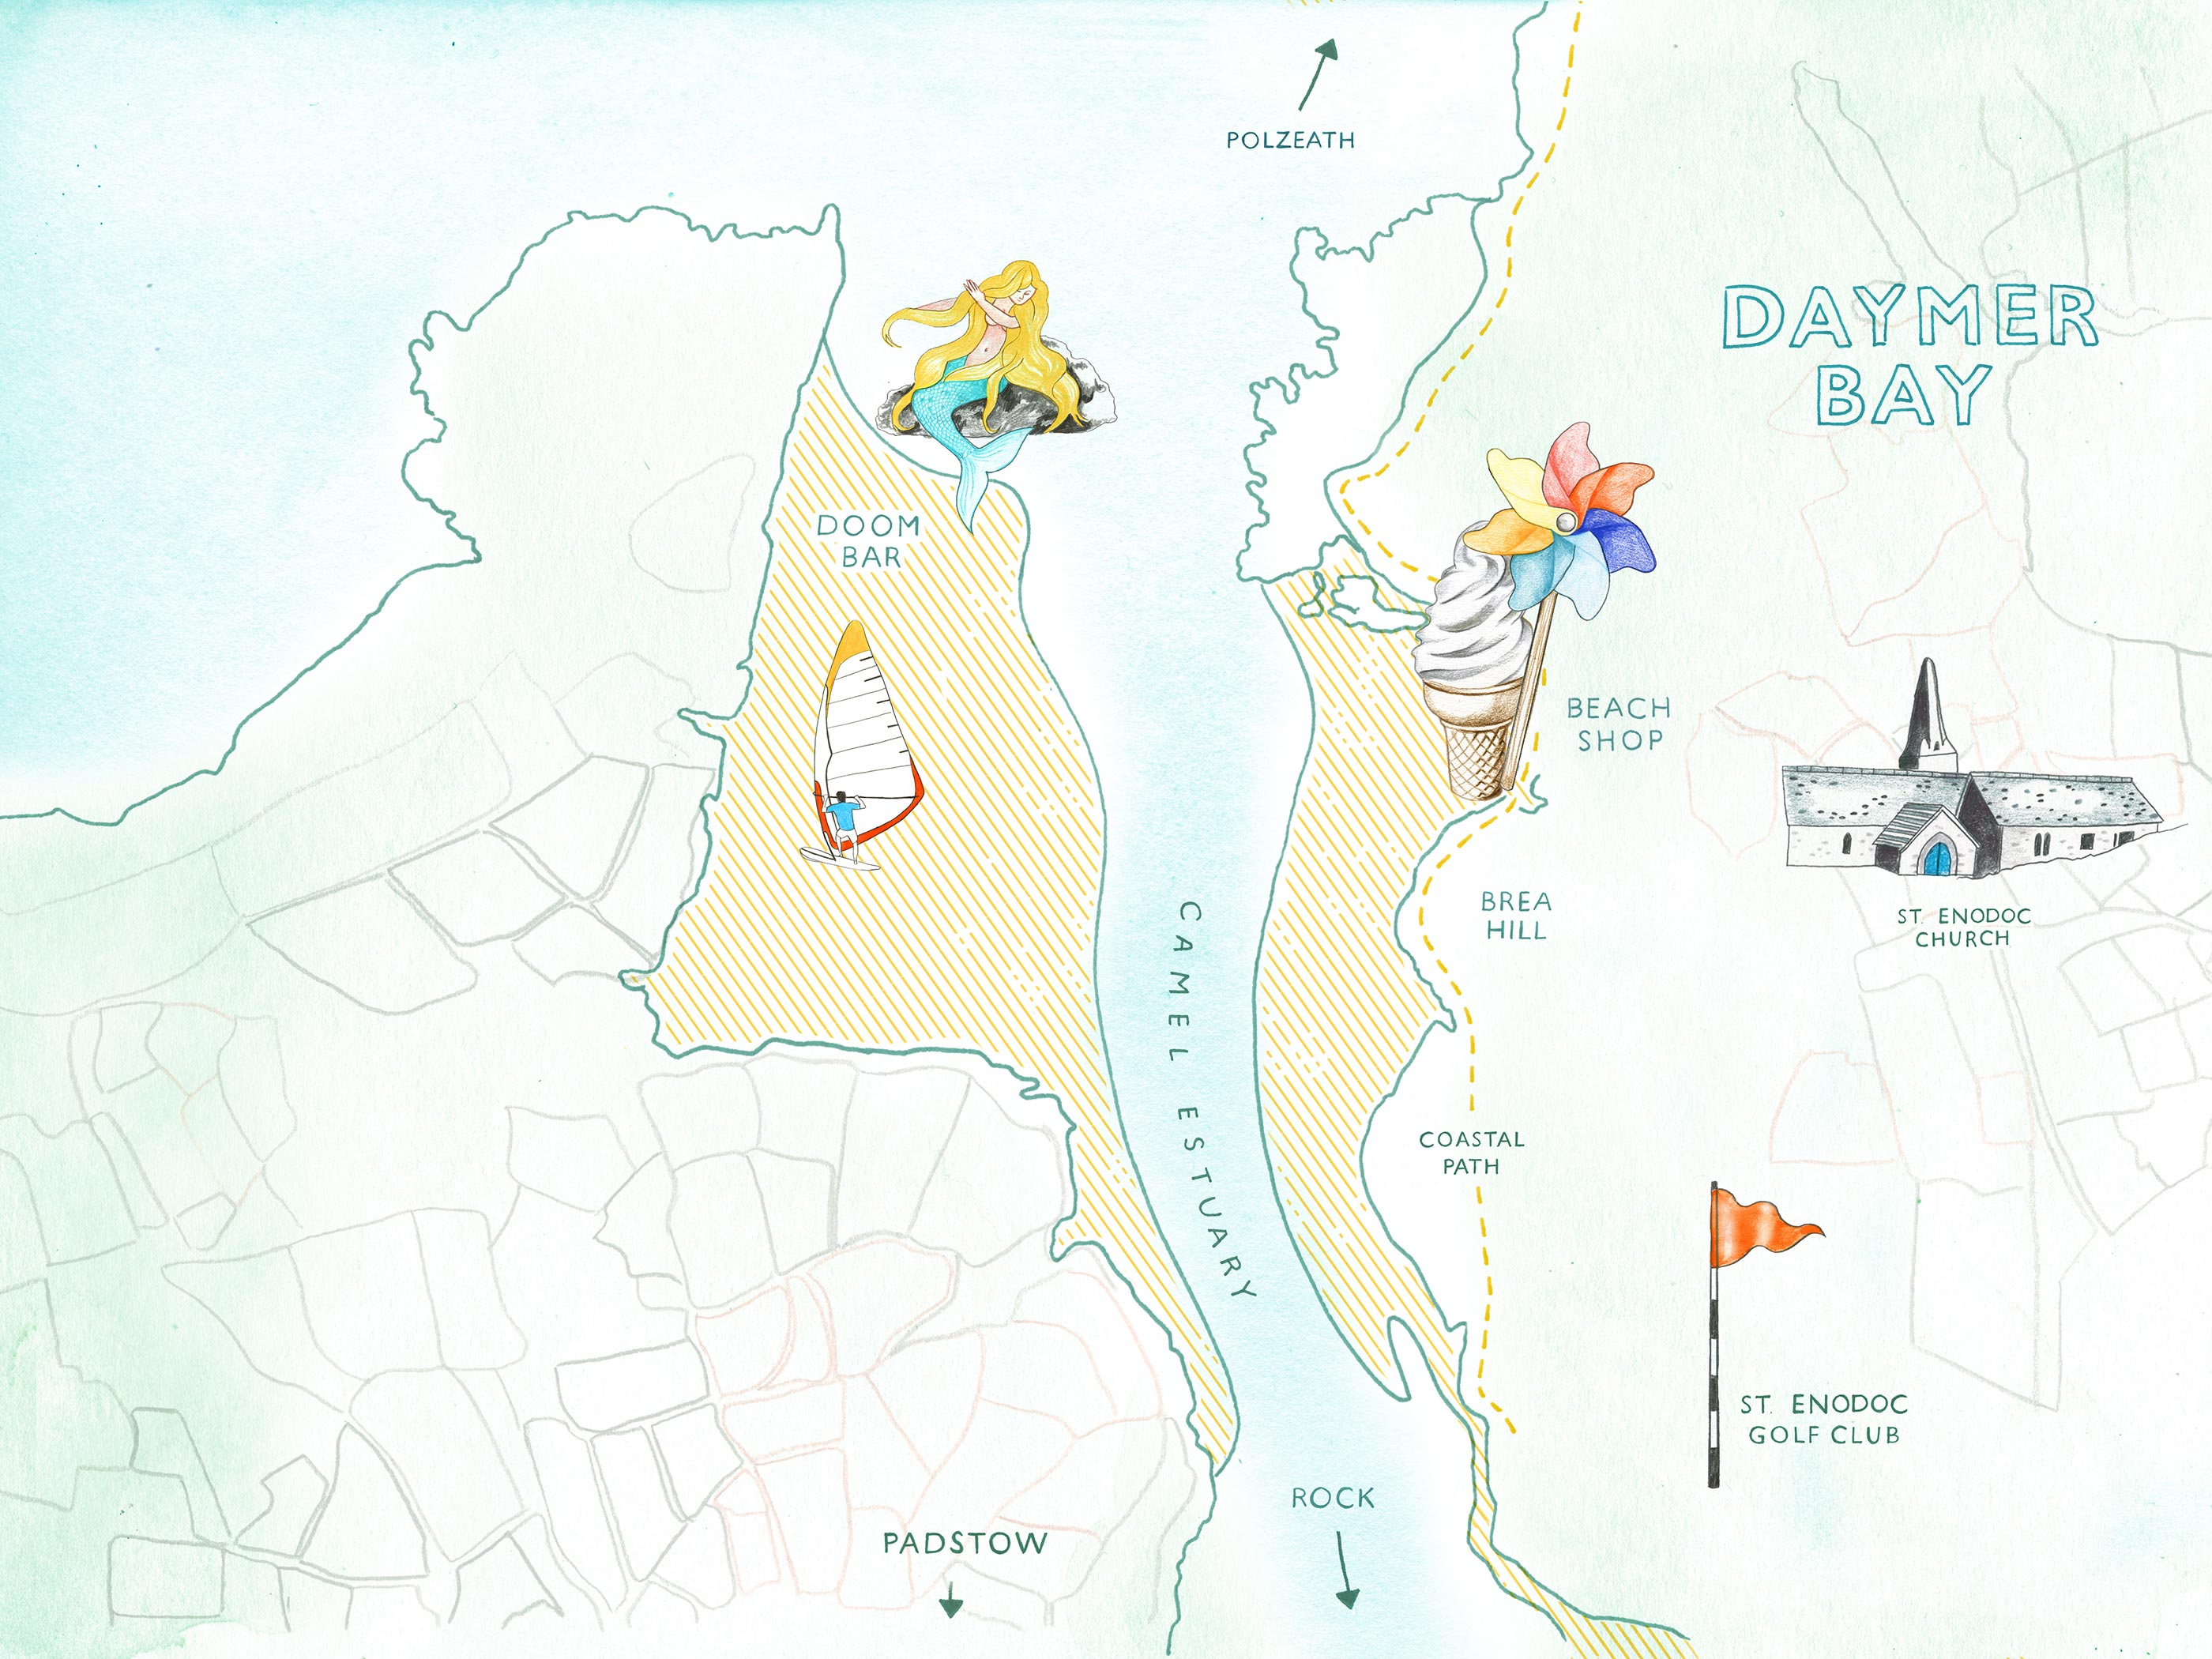 Map of Daymer Bay